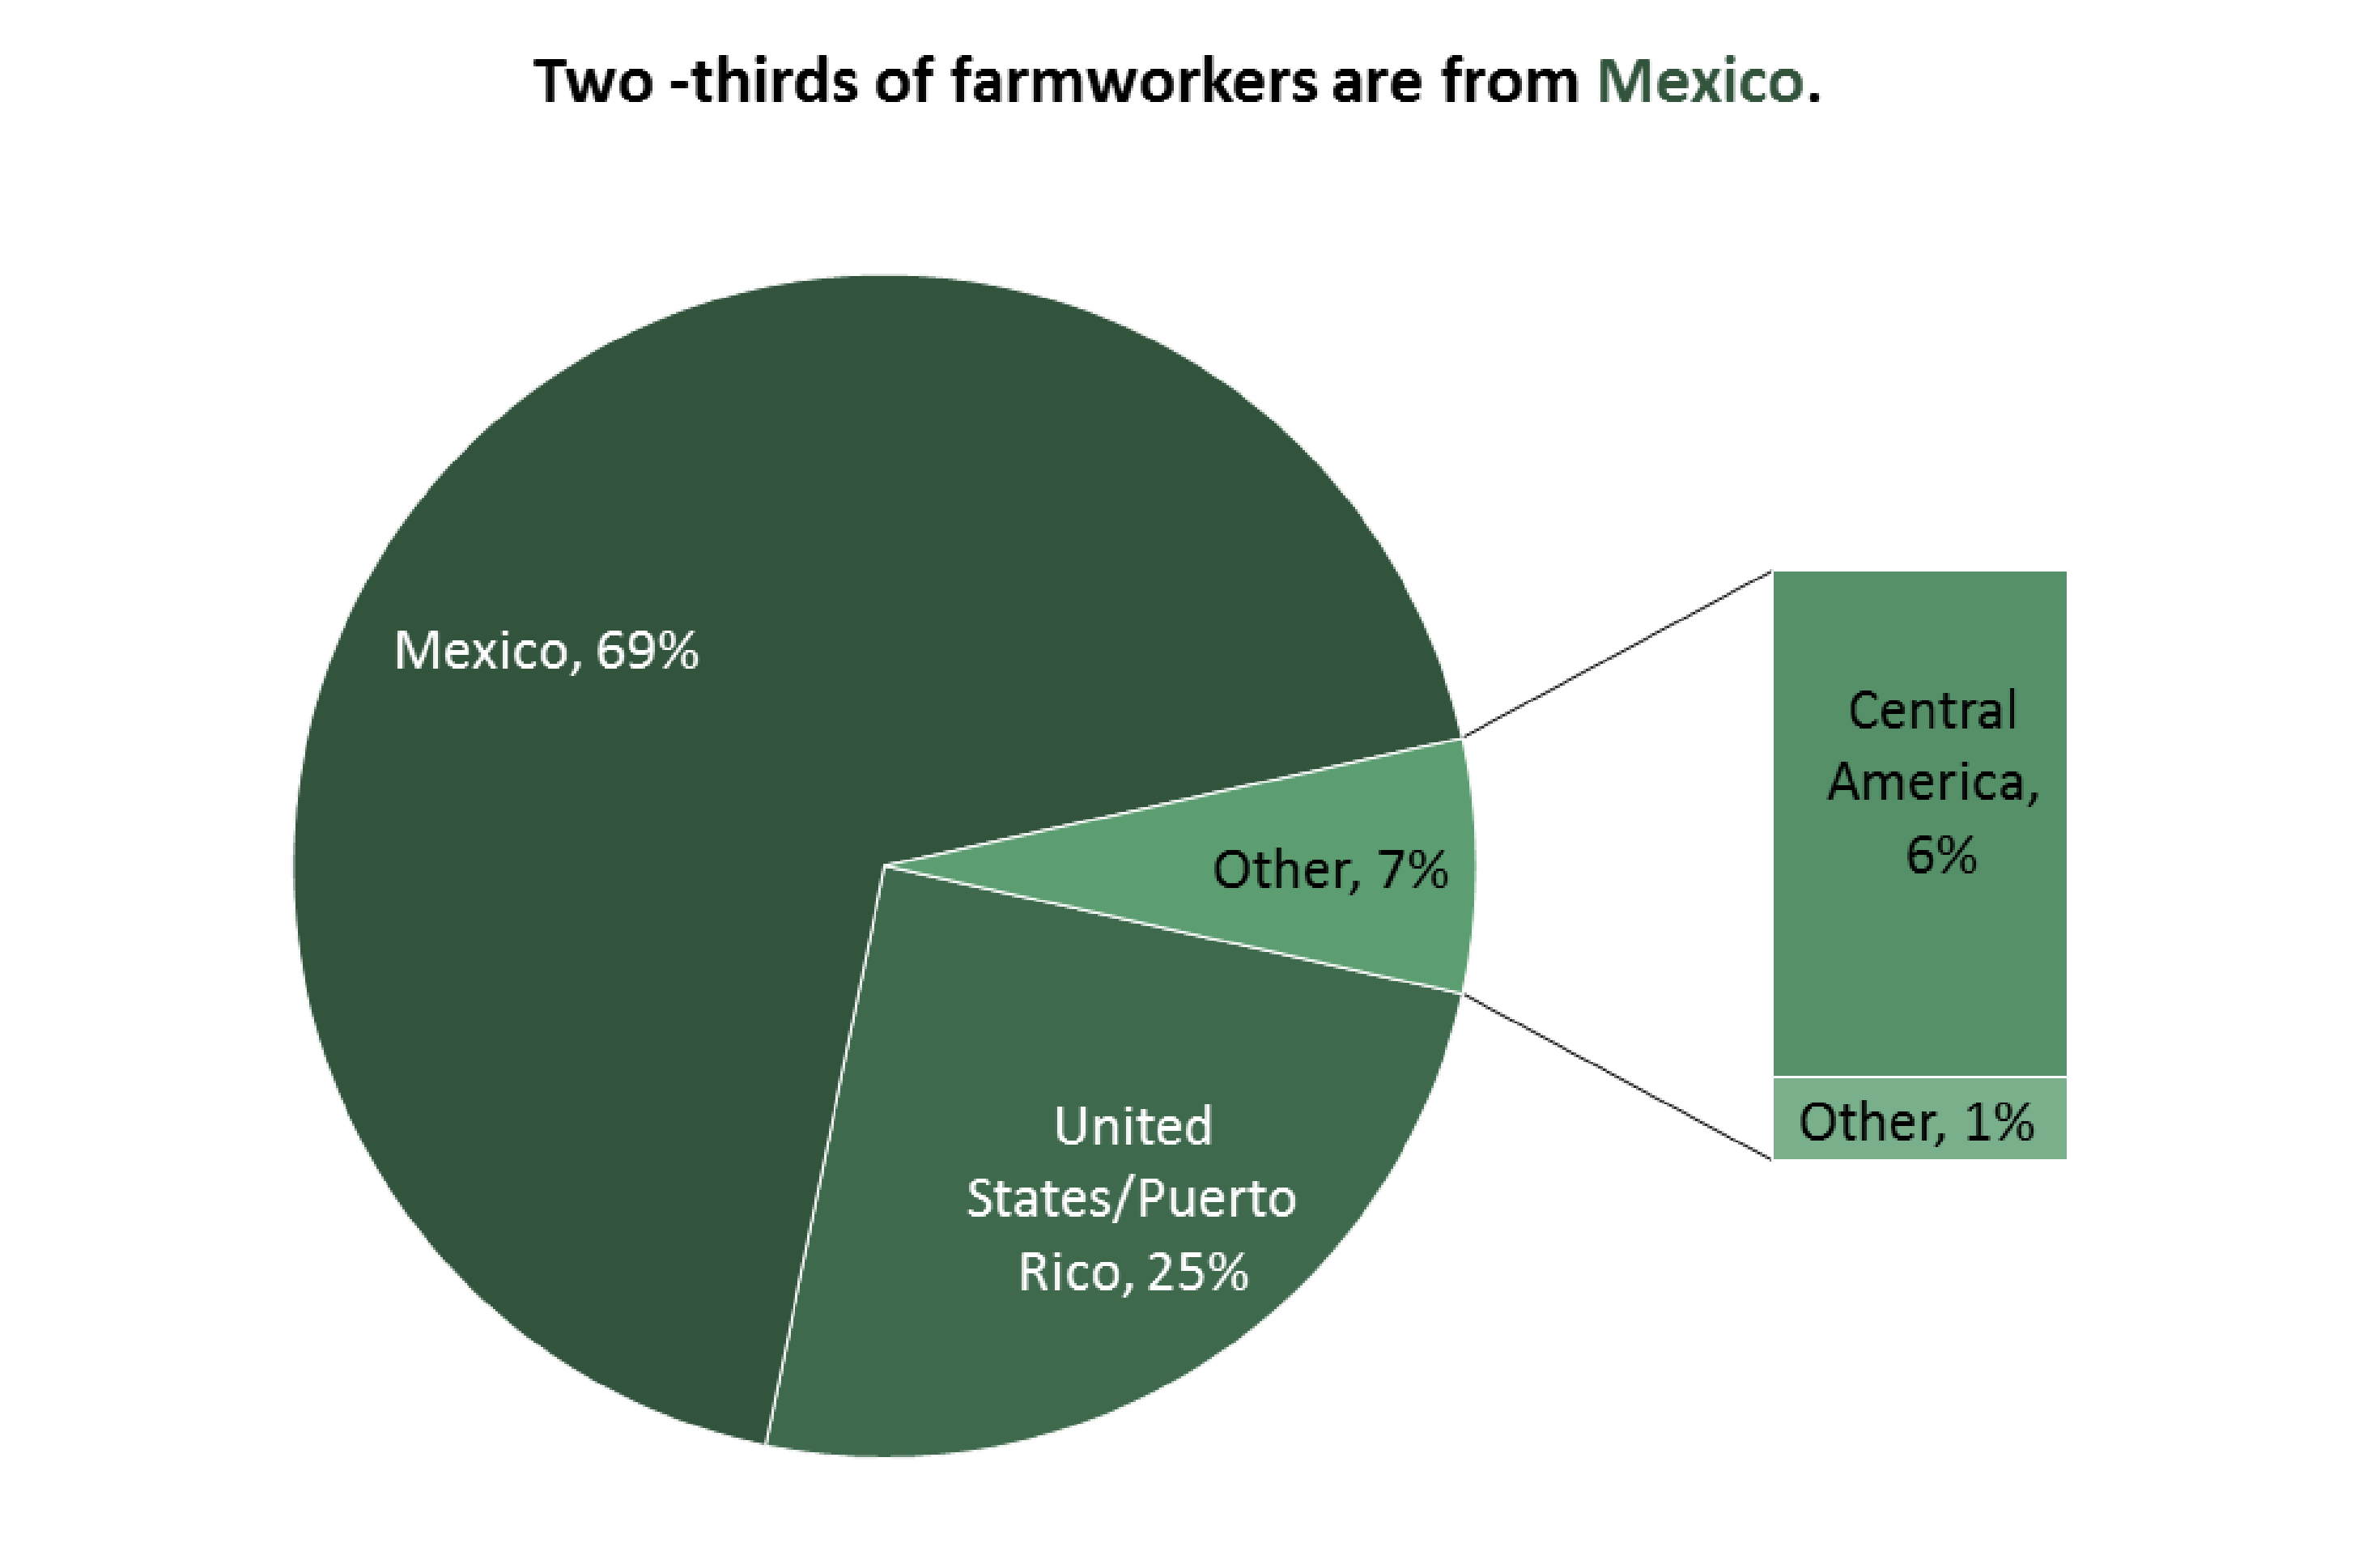 Two-thirds of hired farmworkers are from Mexico.